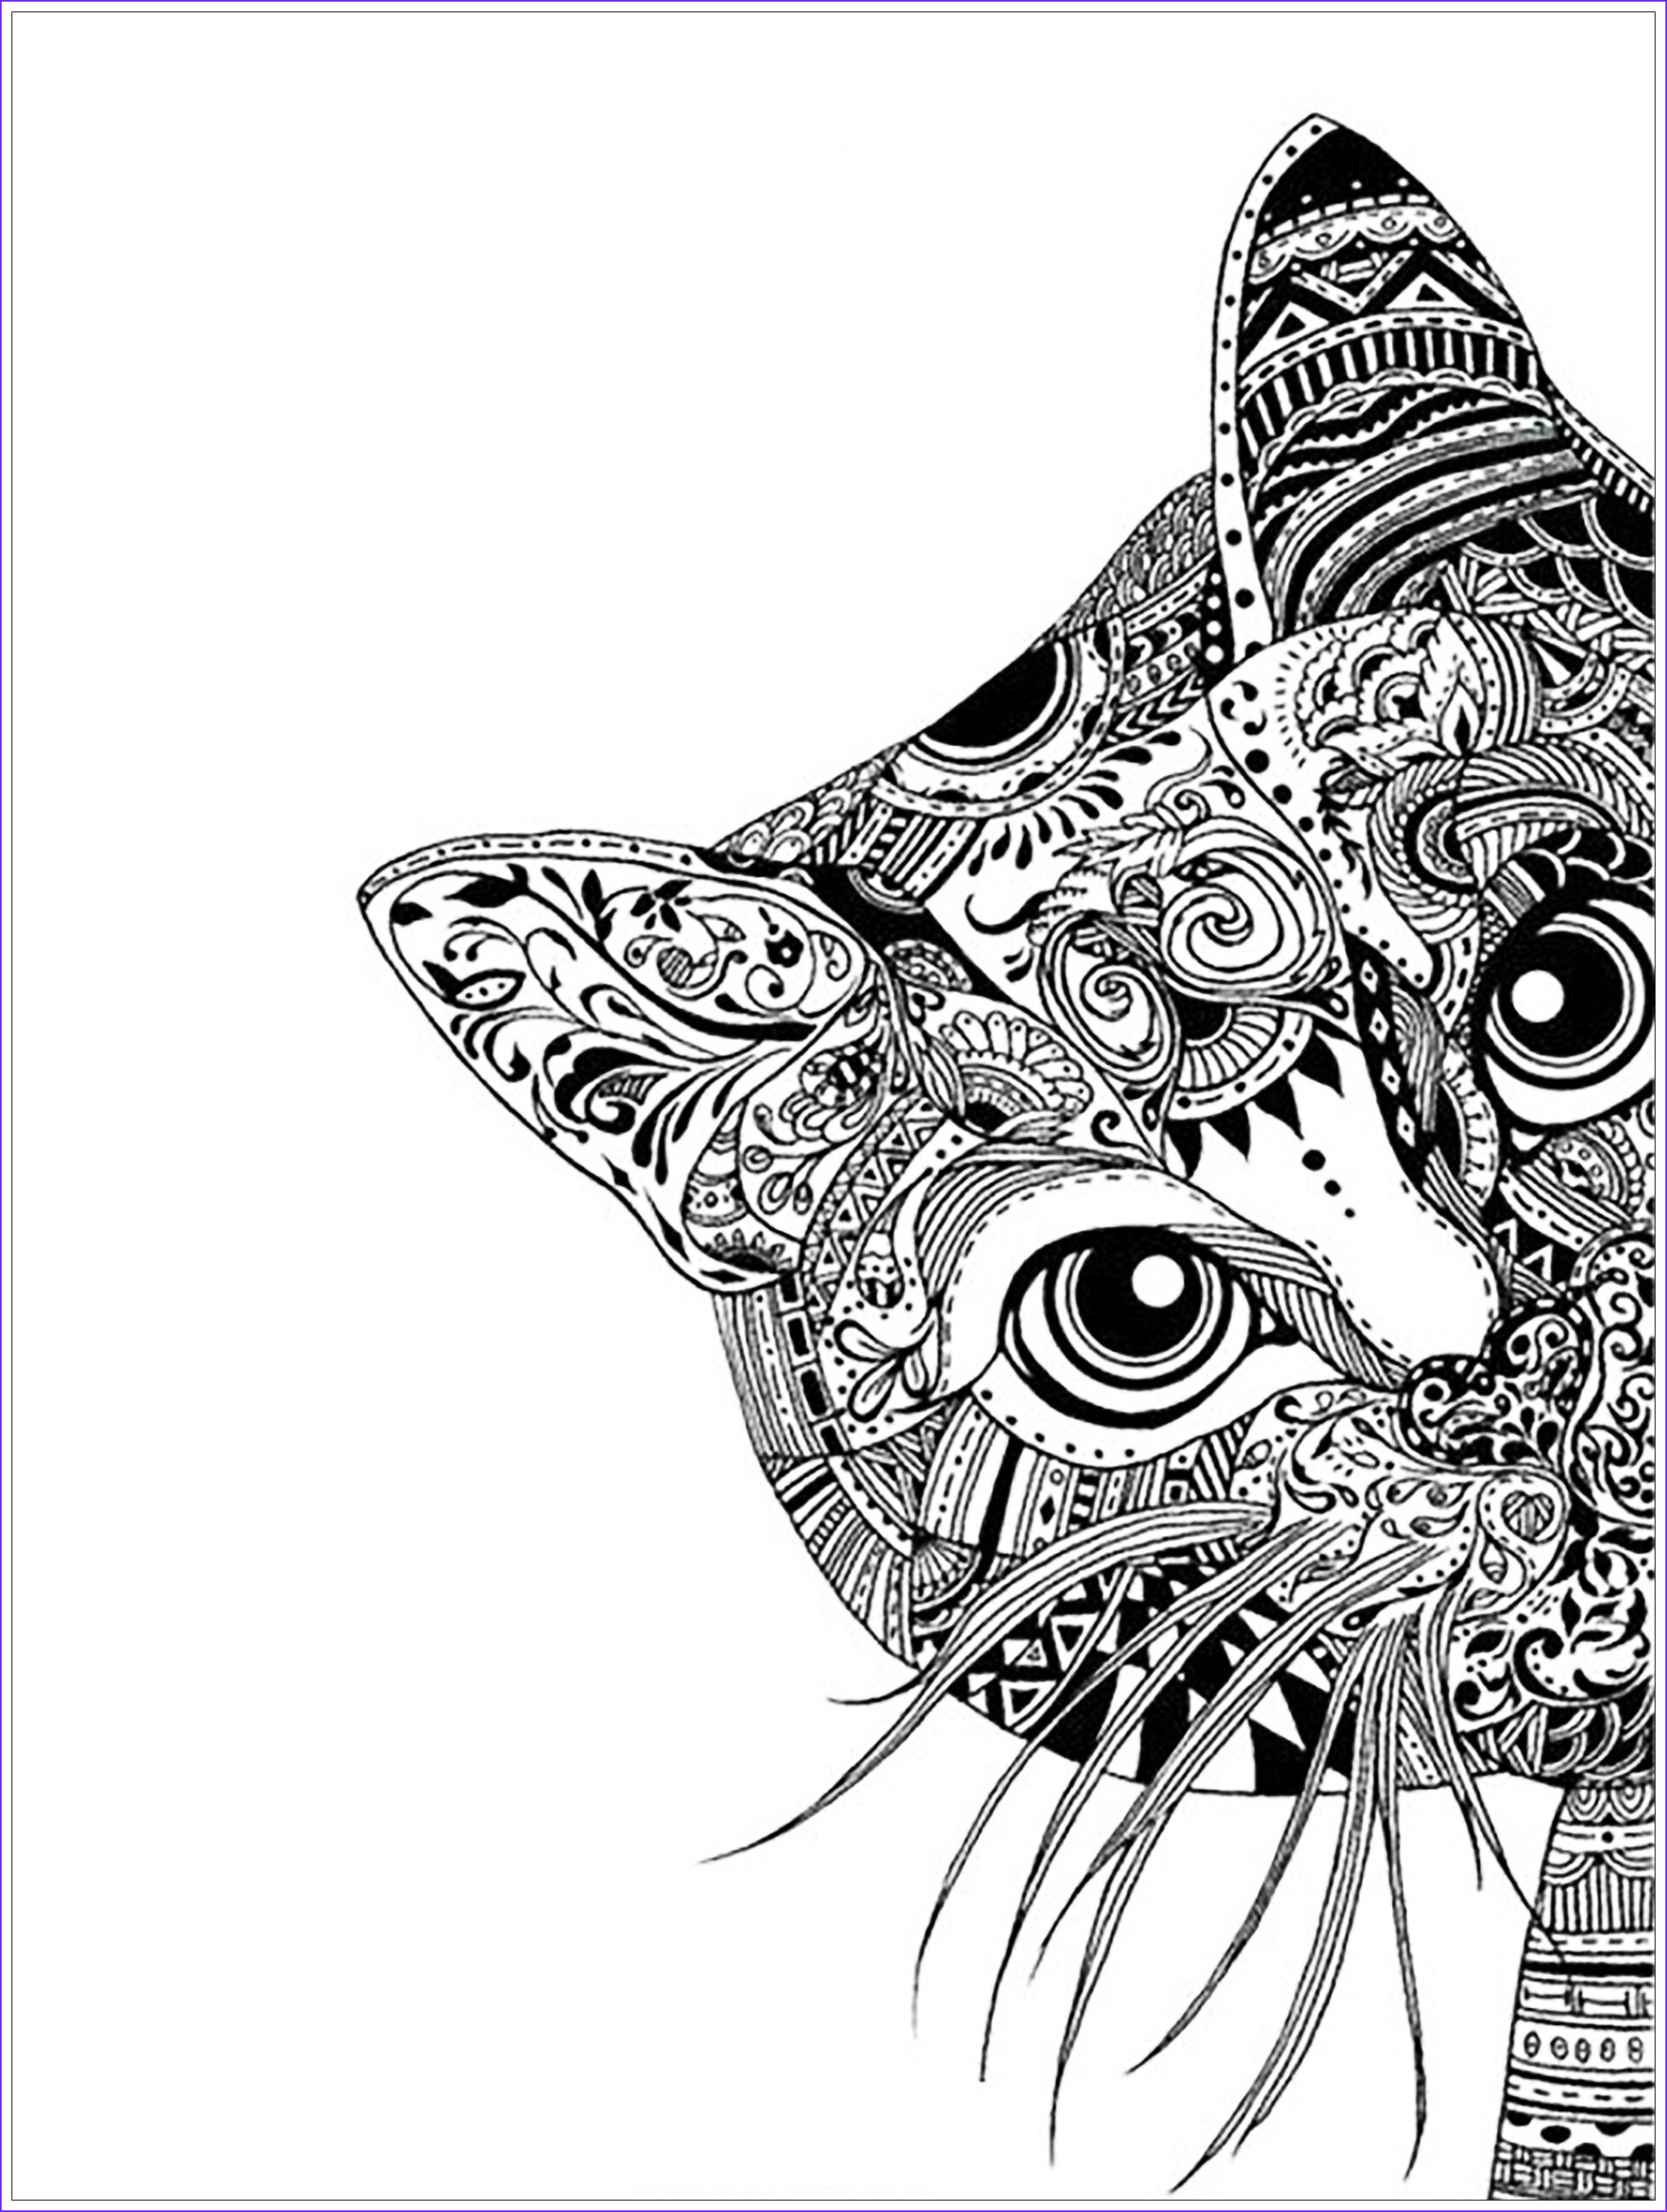 image=animals coloring pages adults cat head 1